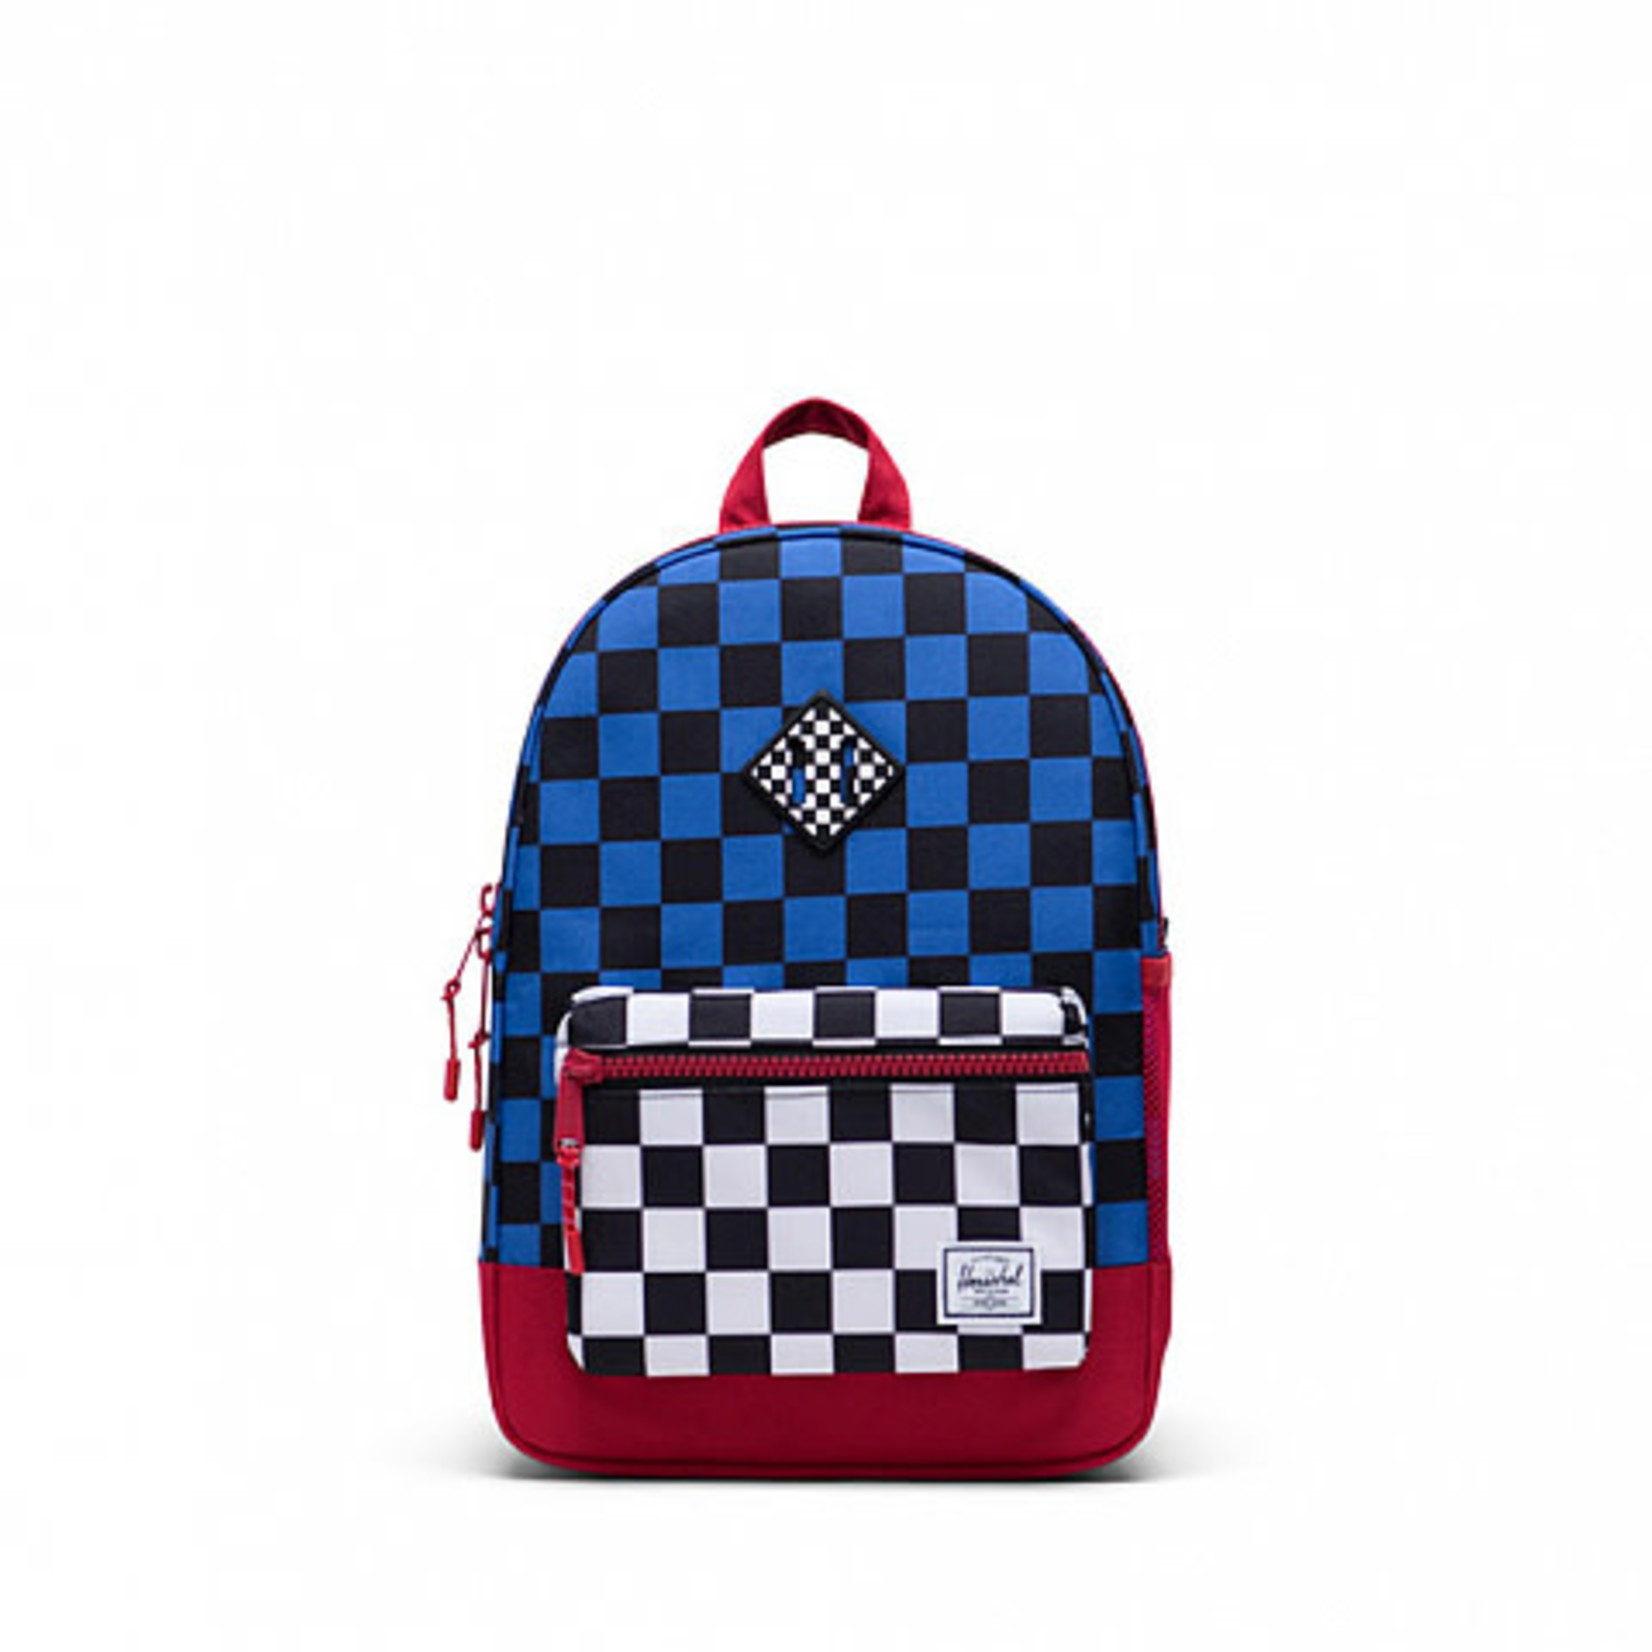 HERSCHEL HERSCHEL-Large-heritage RED-BLUE/ check L